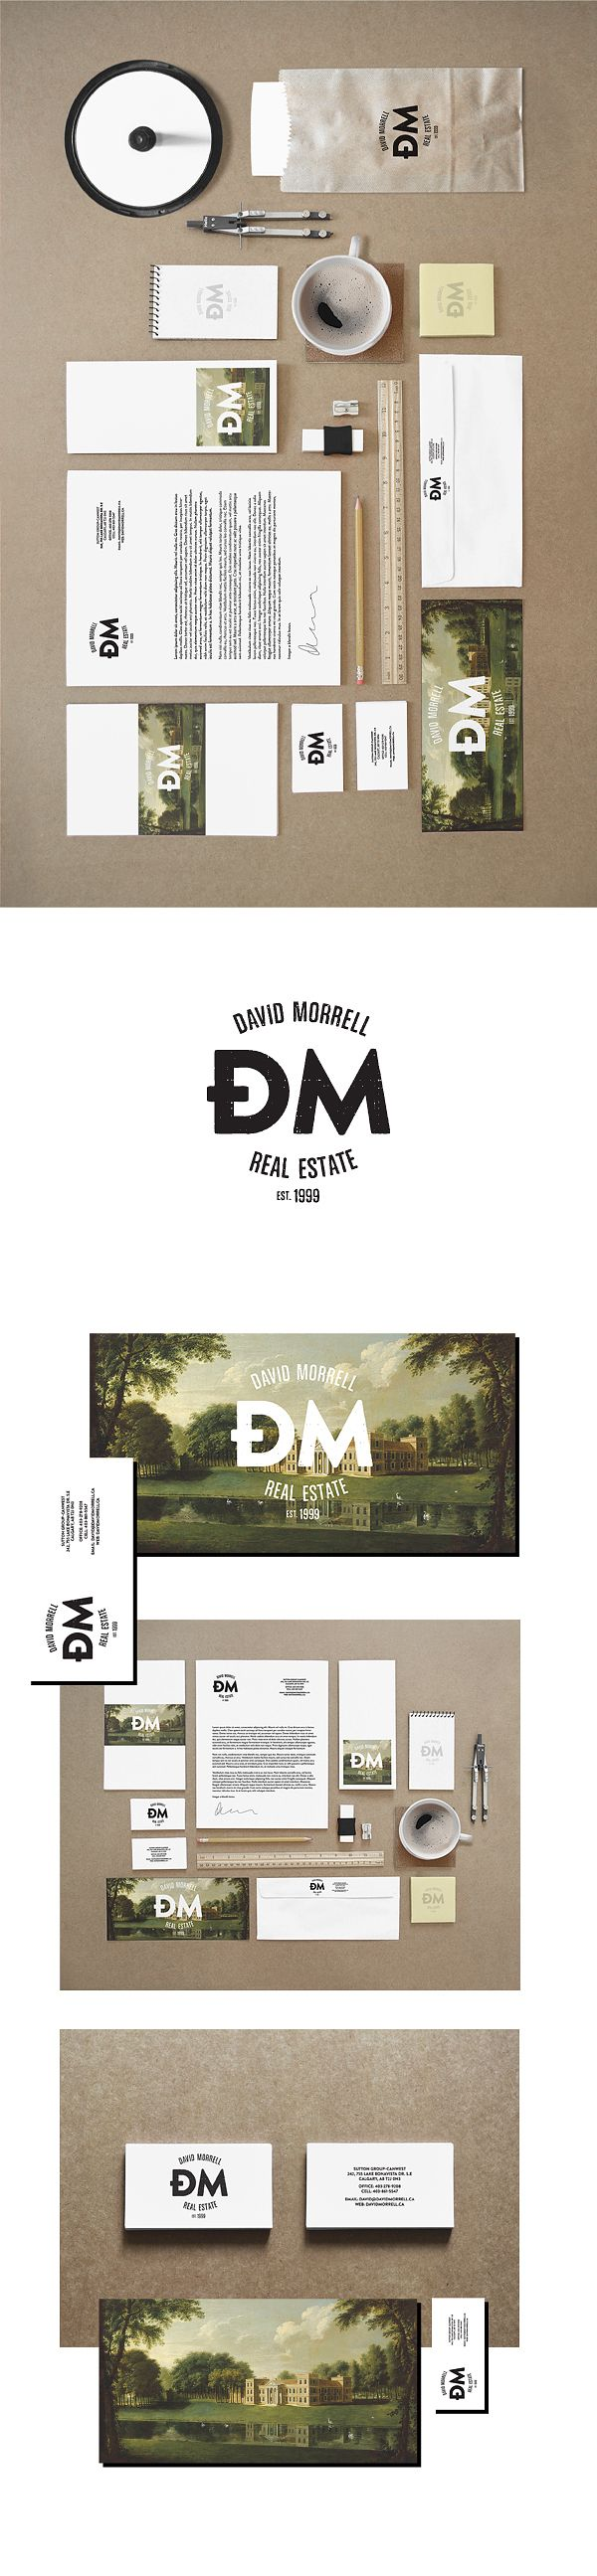 David Morell - Real Estate Agent by Zdunkiewicz , via Behance